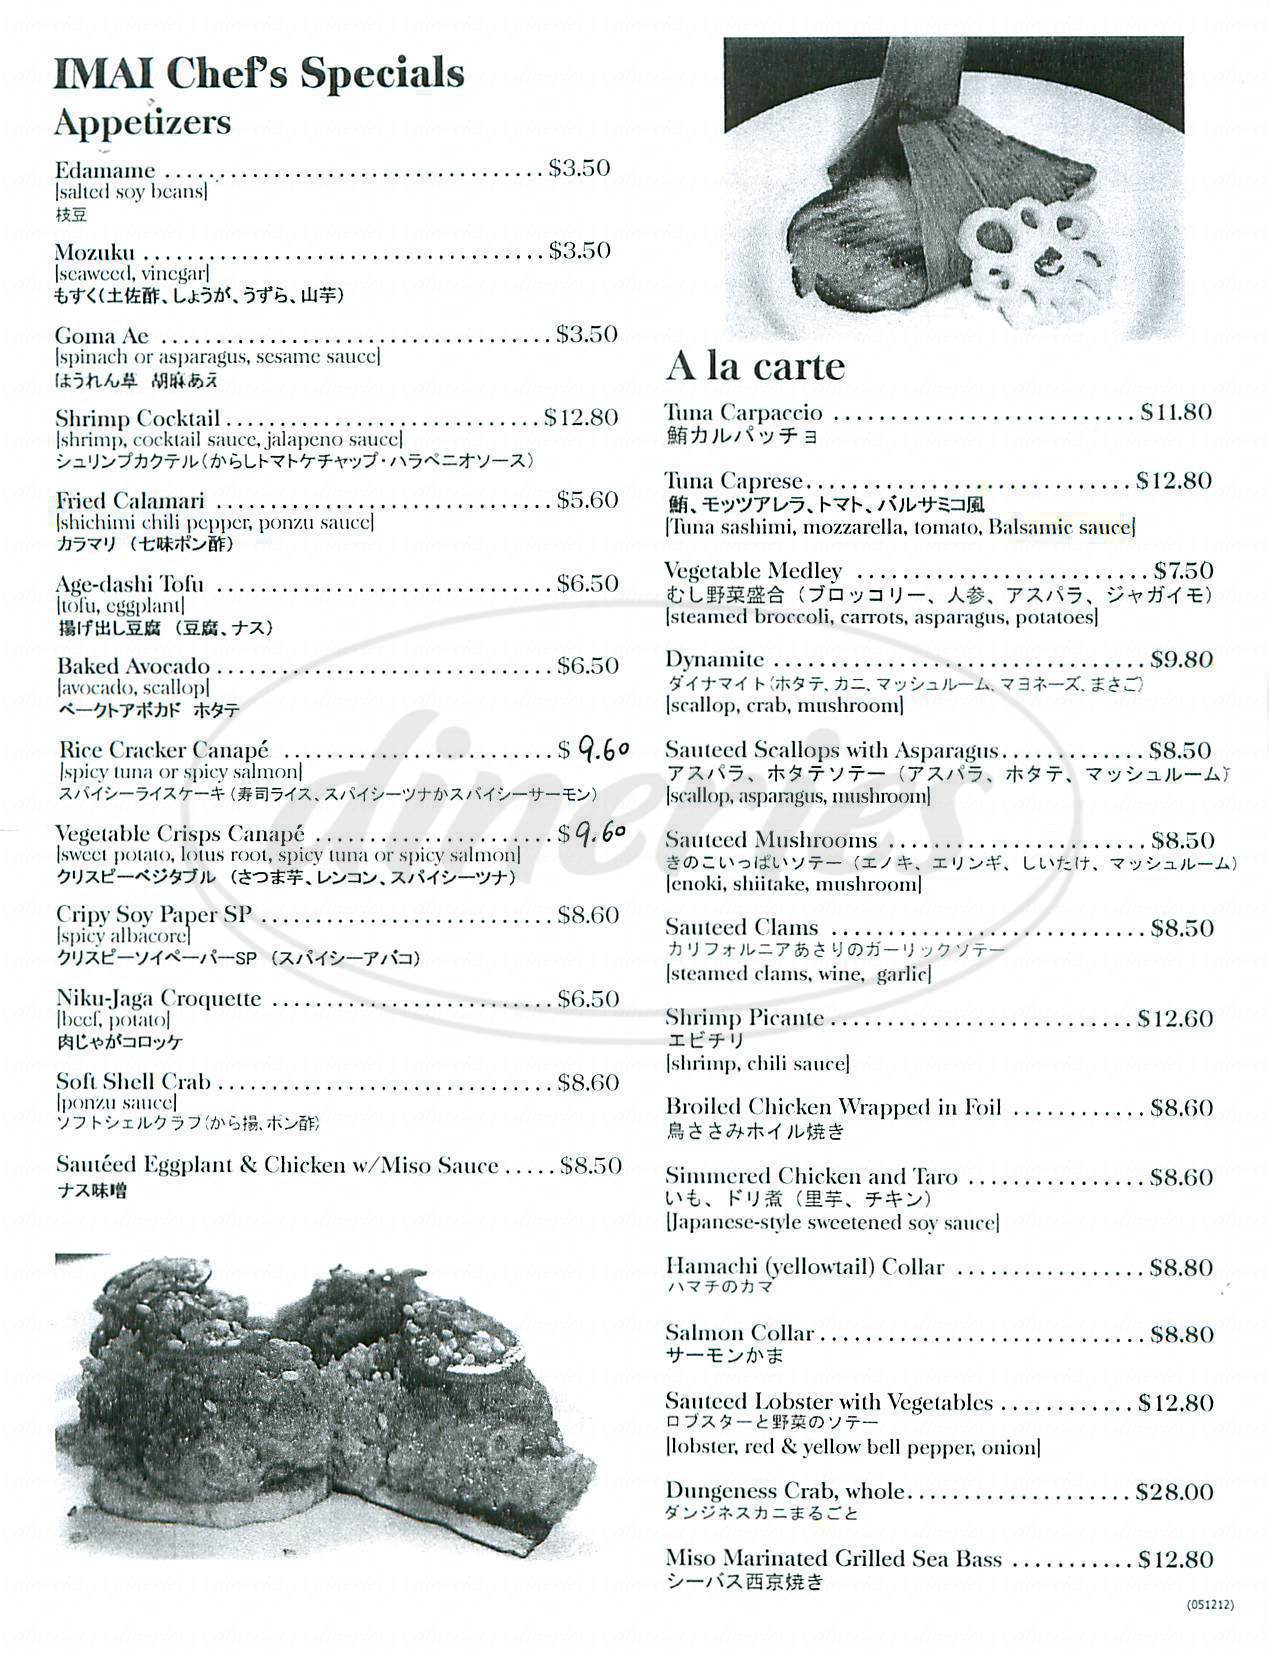 menu for Sushi & Kushi Imai